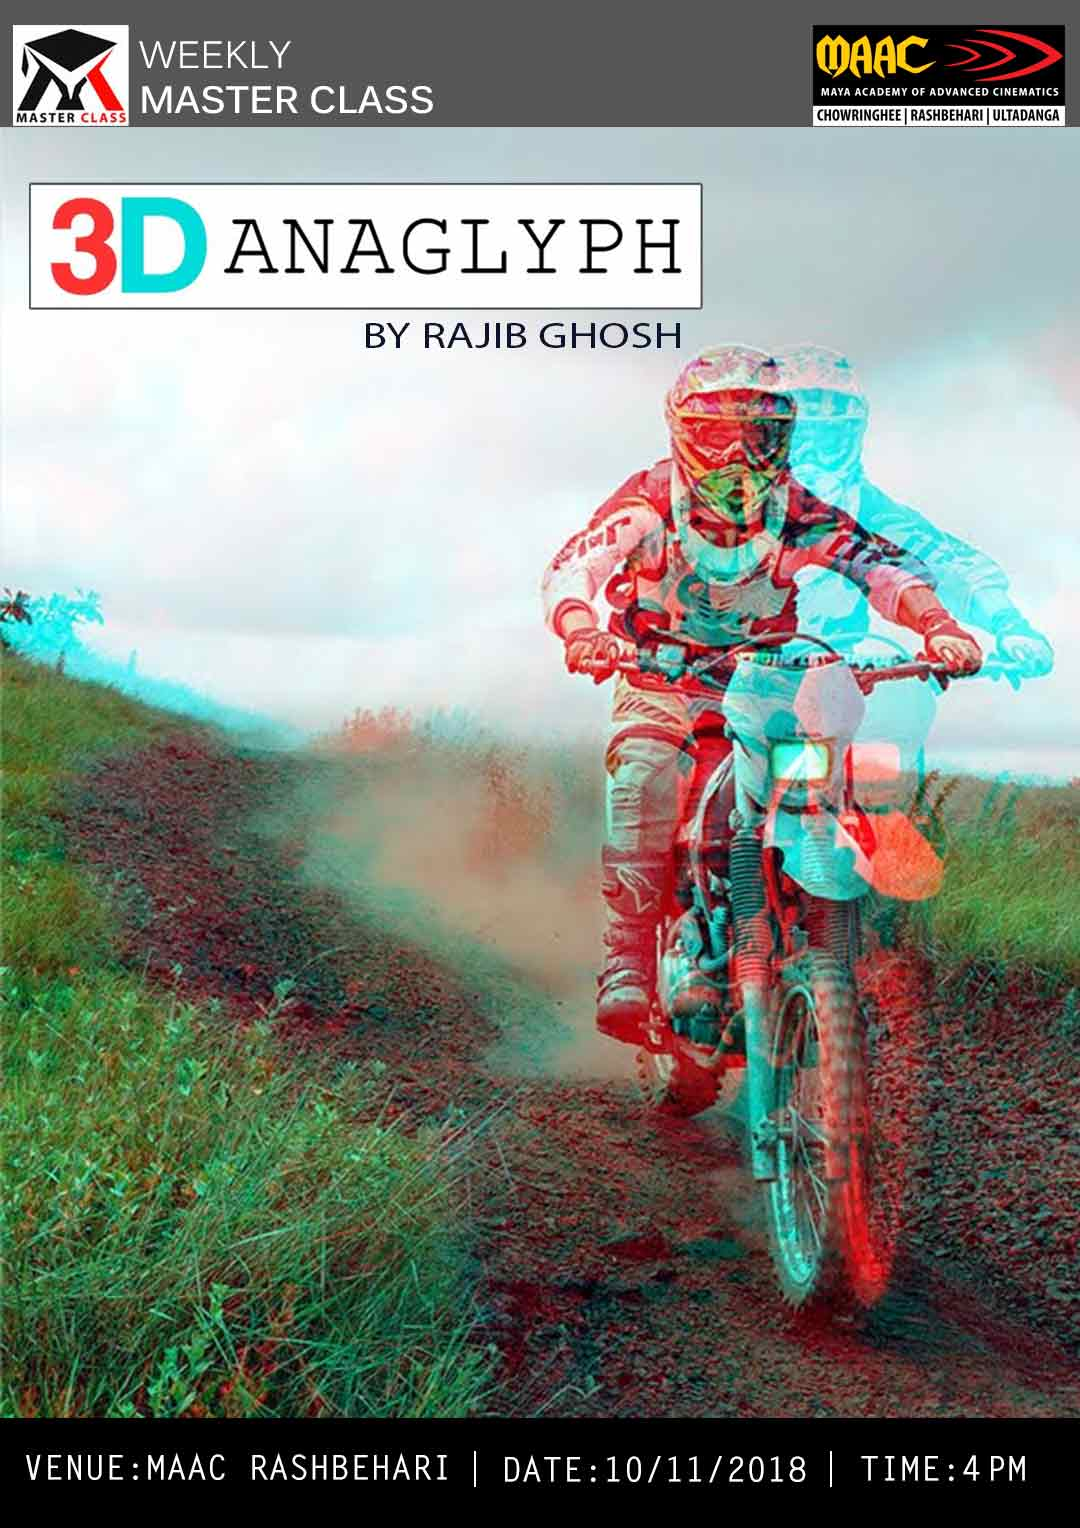 Weekly Master Class on 3D Anaglyph